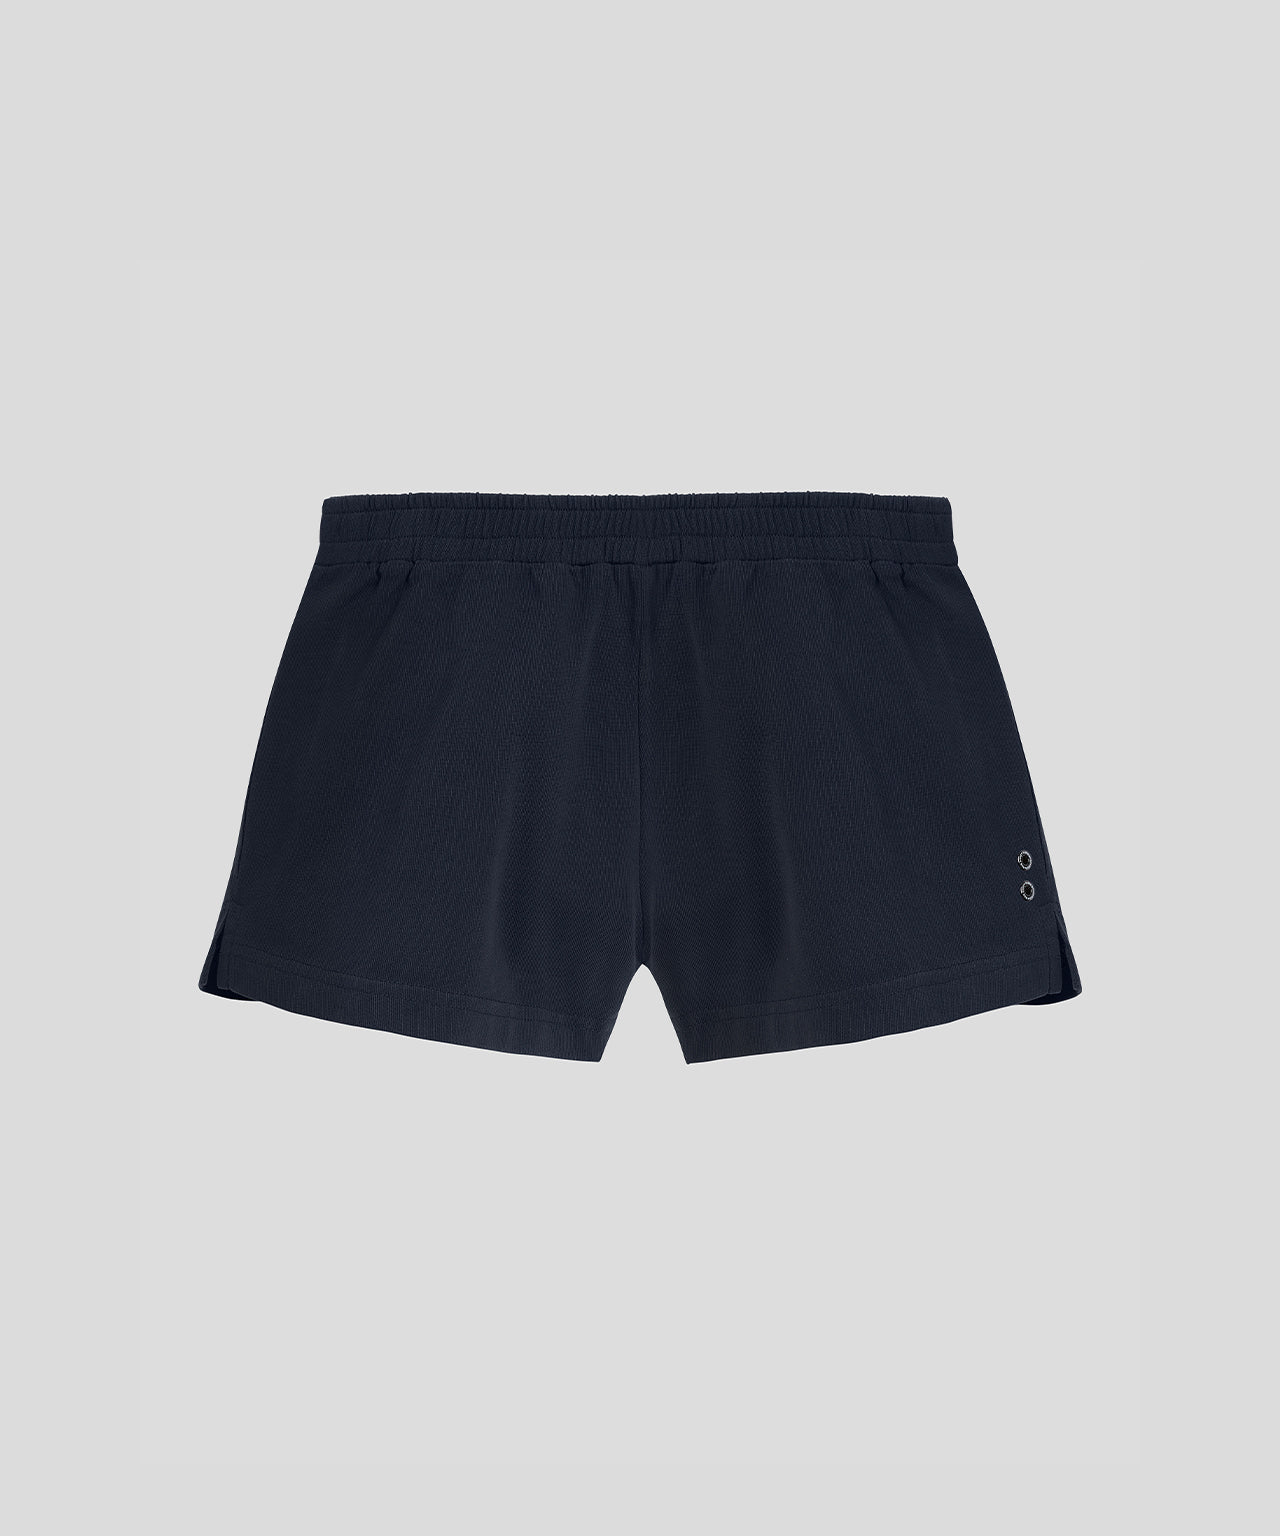 Home Shorts - navy